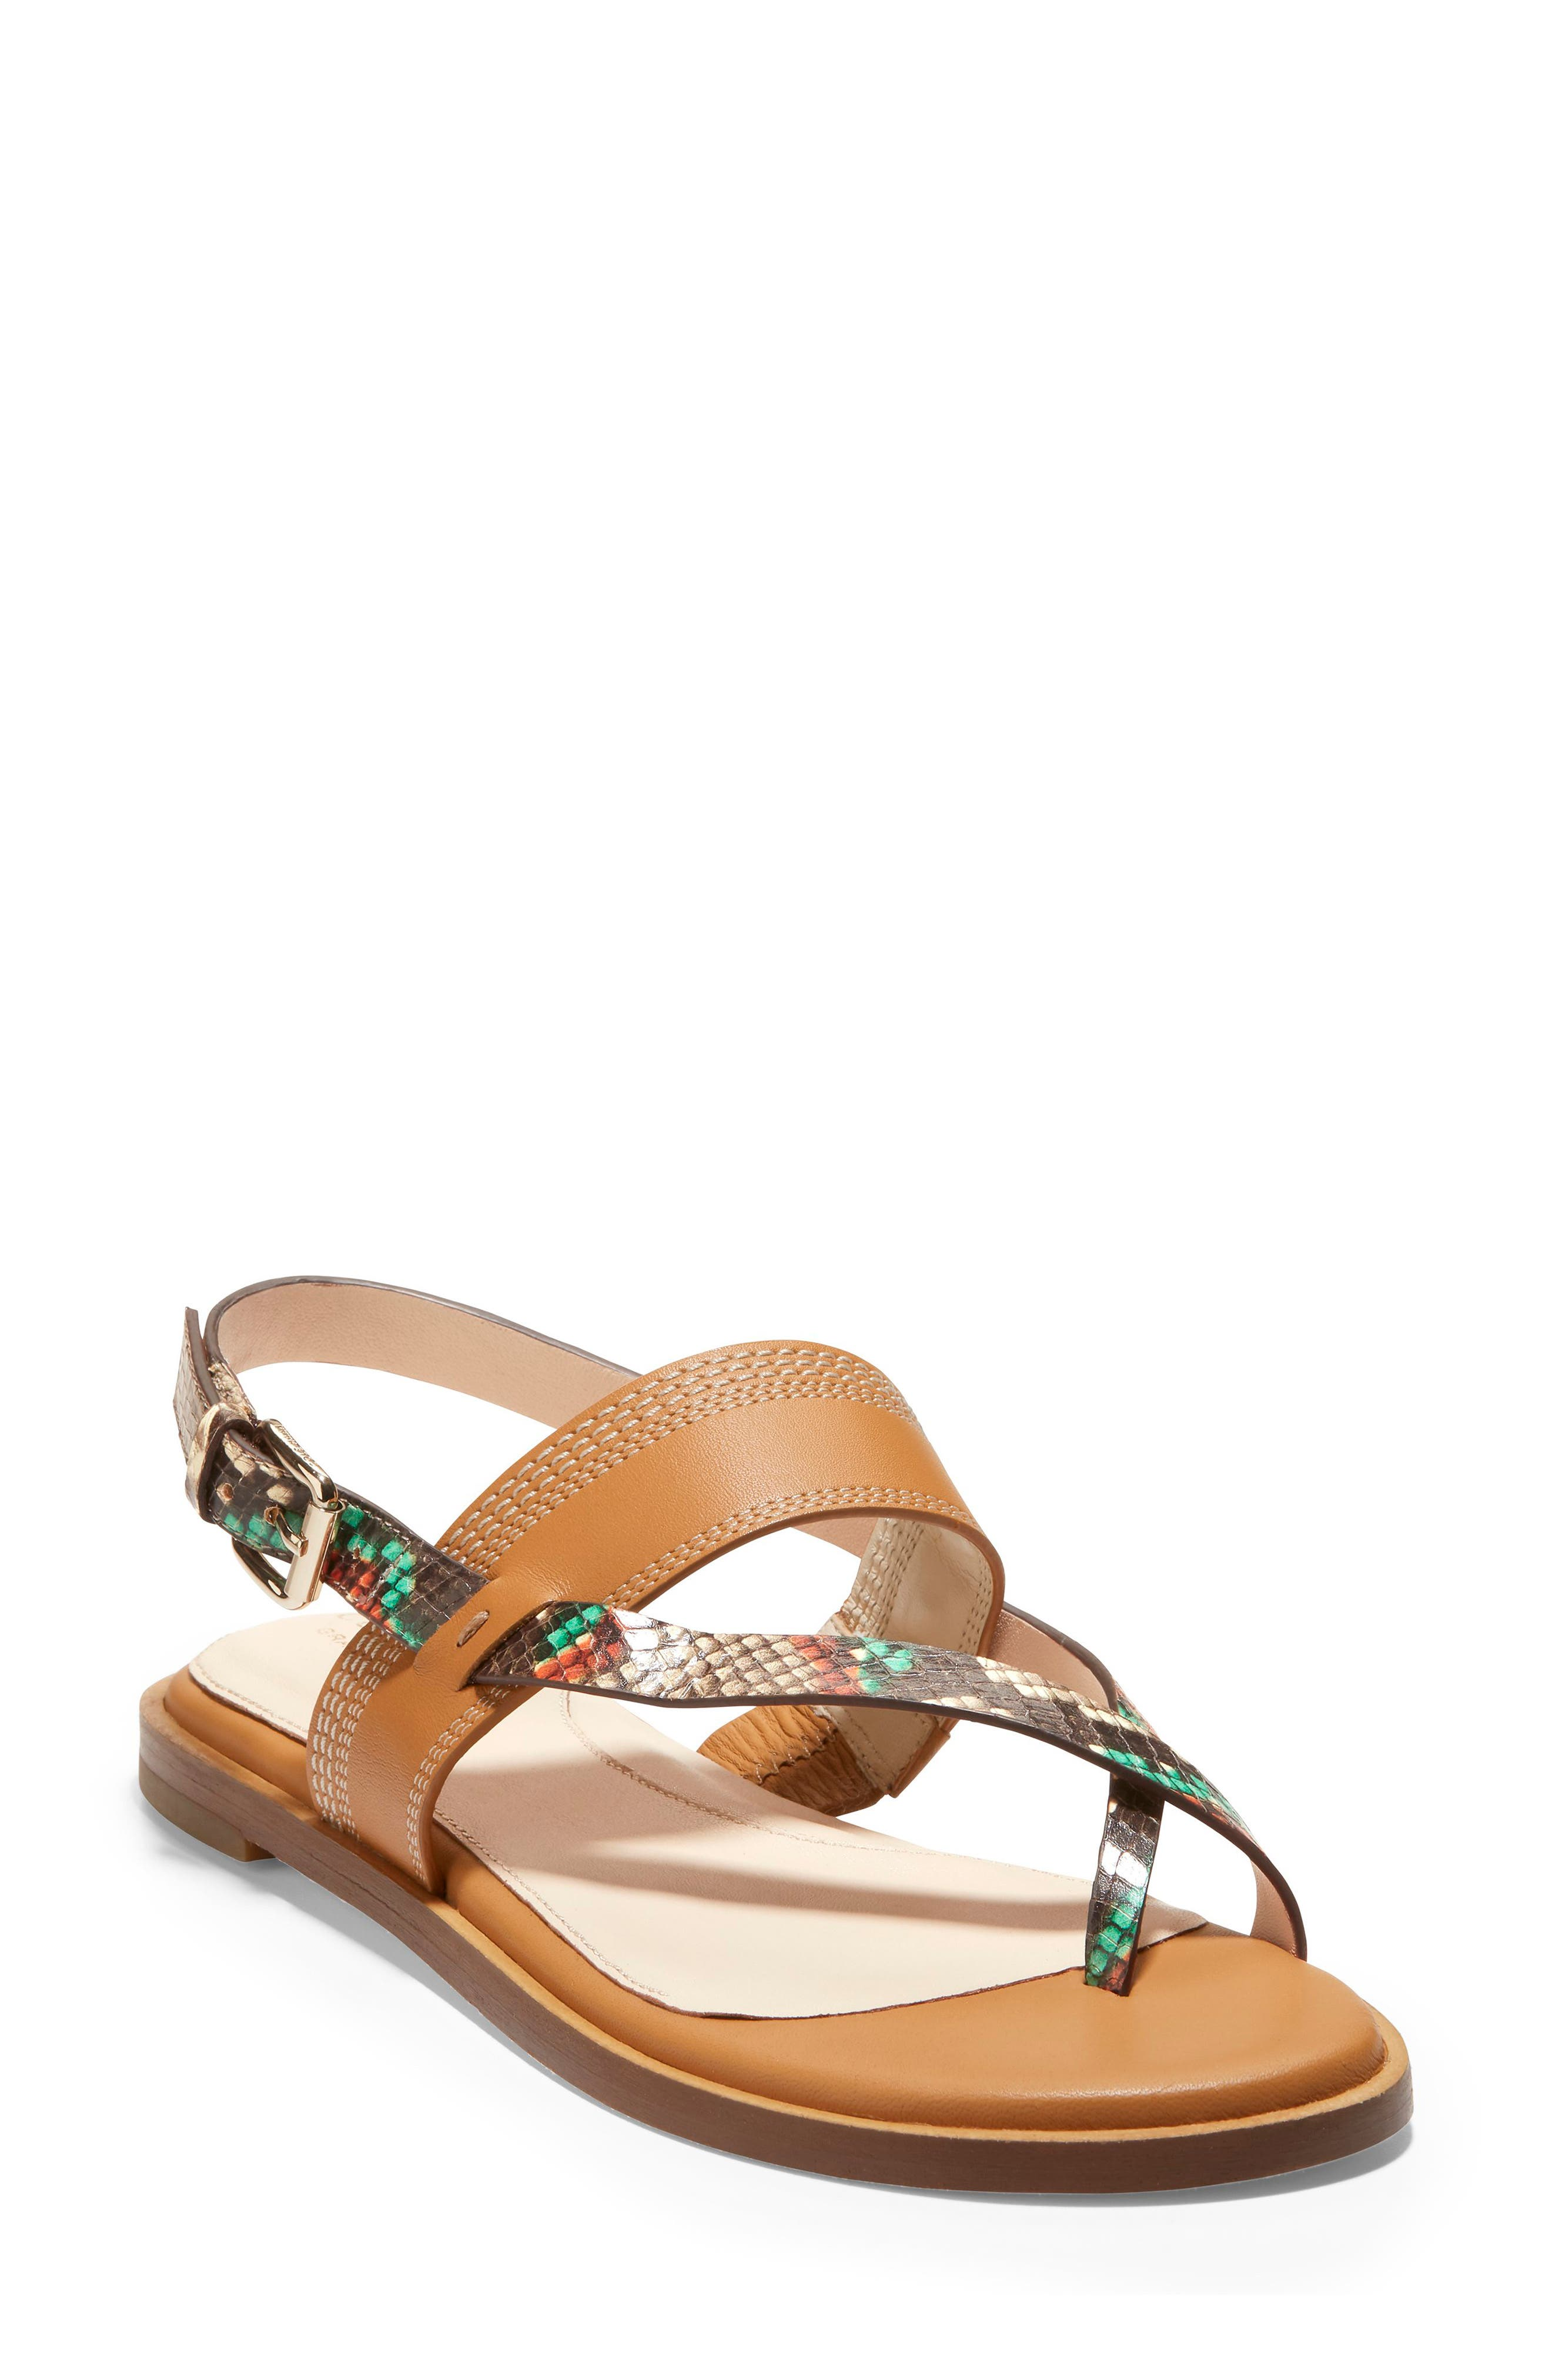 Cole Haan Sandals ANICA SNAKE EMBOSSED LEATHER THONG TOE SANDAL